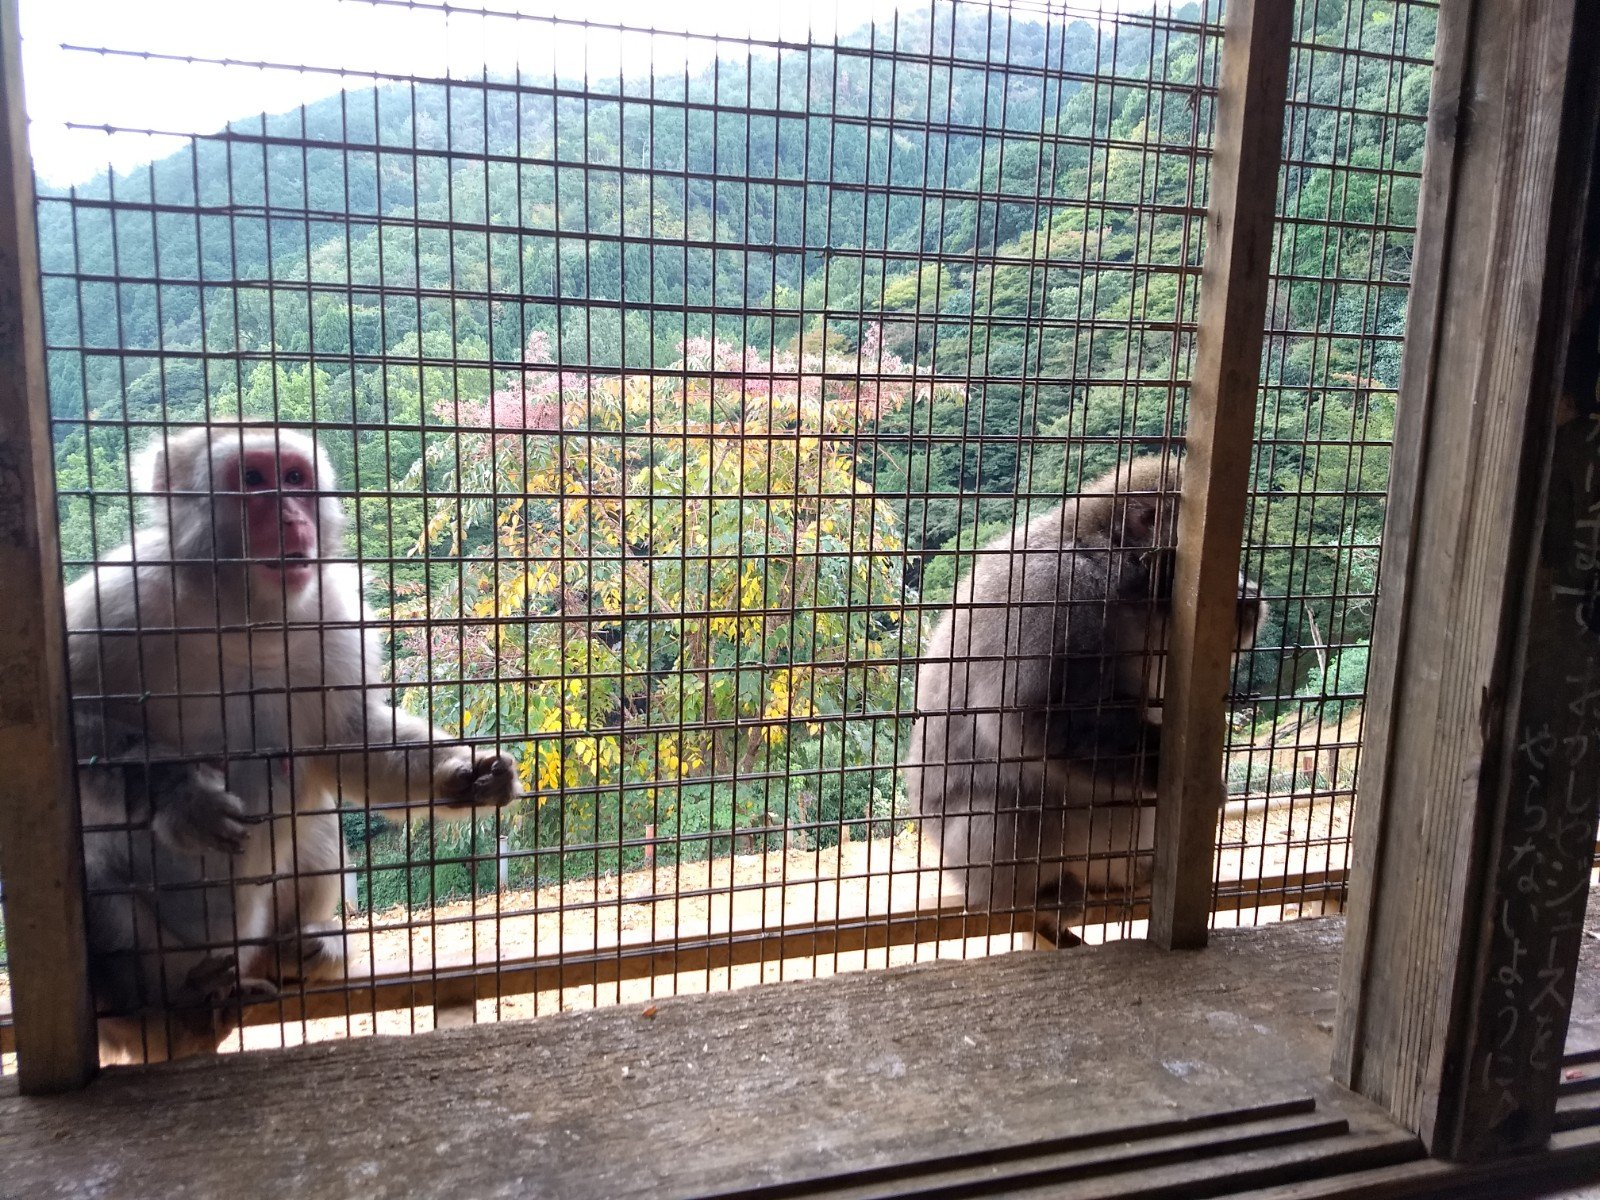 Hungry monkeys at Arashiyama Monkey Park